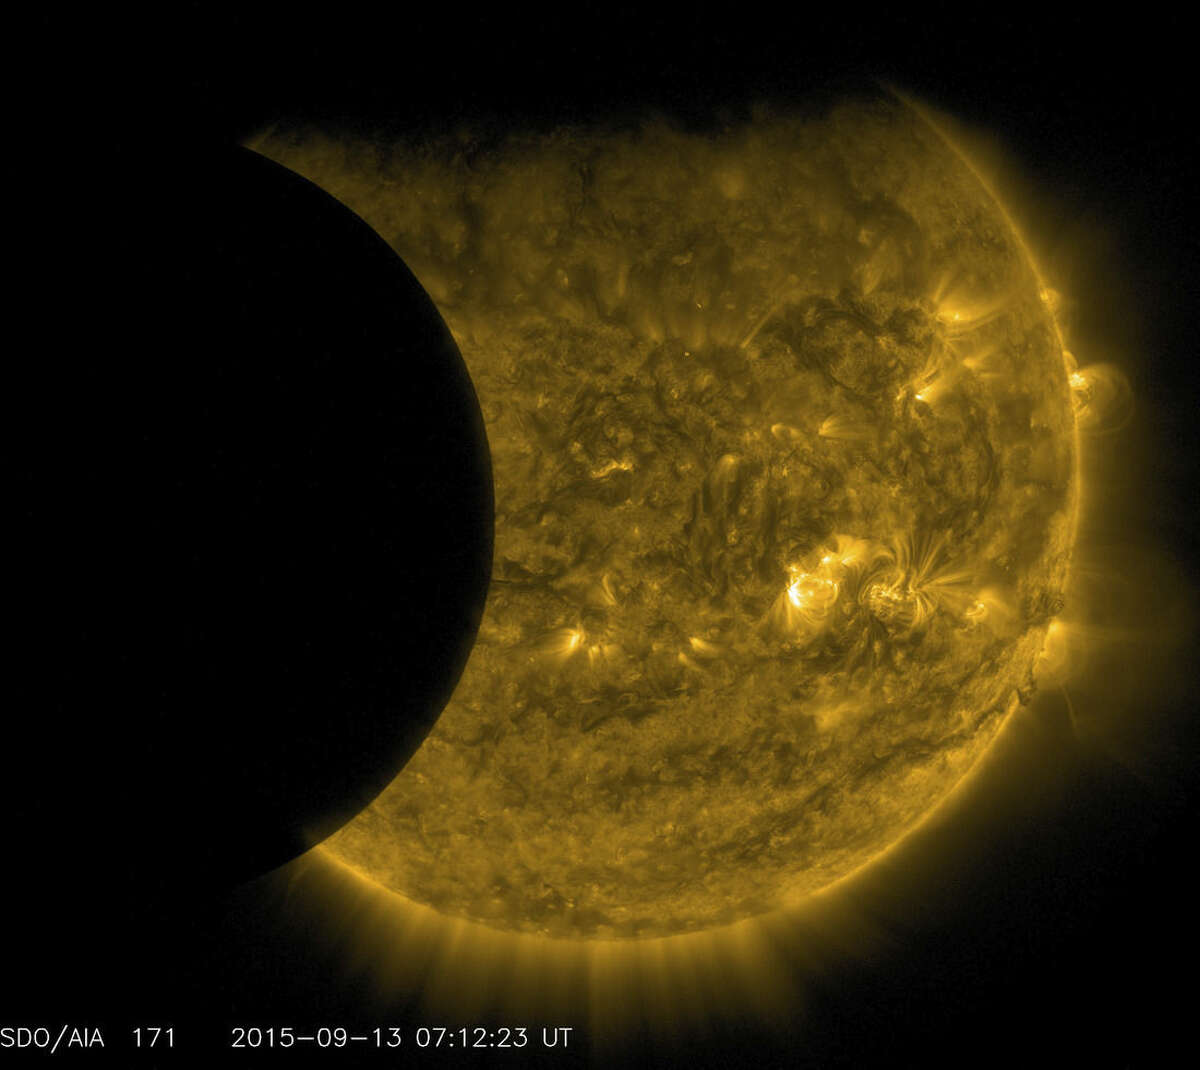 This Sept. 13, 2015 image provided by NASA shows the moon, left, and the Earth, top, transiting the sun together, seen from the Solar Dynamics Observatory. The edge of Earth appears fuzzy because the atmosphere blocks different amounts of light at different altitudes. This image was taken in extreme ultraviolet wavelengths, invisible to human eyes, but here colorized in gold. A total lunar eclipse will share the stage with a so-called supermoon Sunday evening, Sept. 27, 2015 as seen from the United States. That combination hasn't been seen since 1982 and won't happen again until 2033. (NASA/SDO via AP)